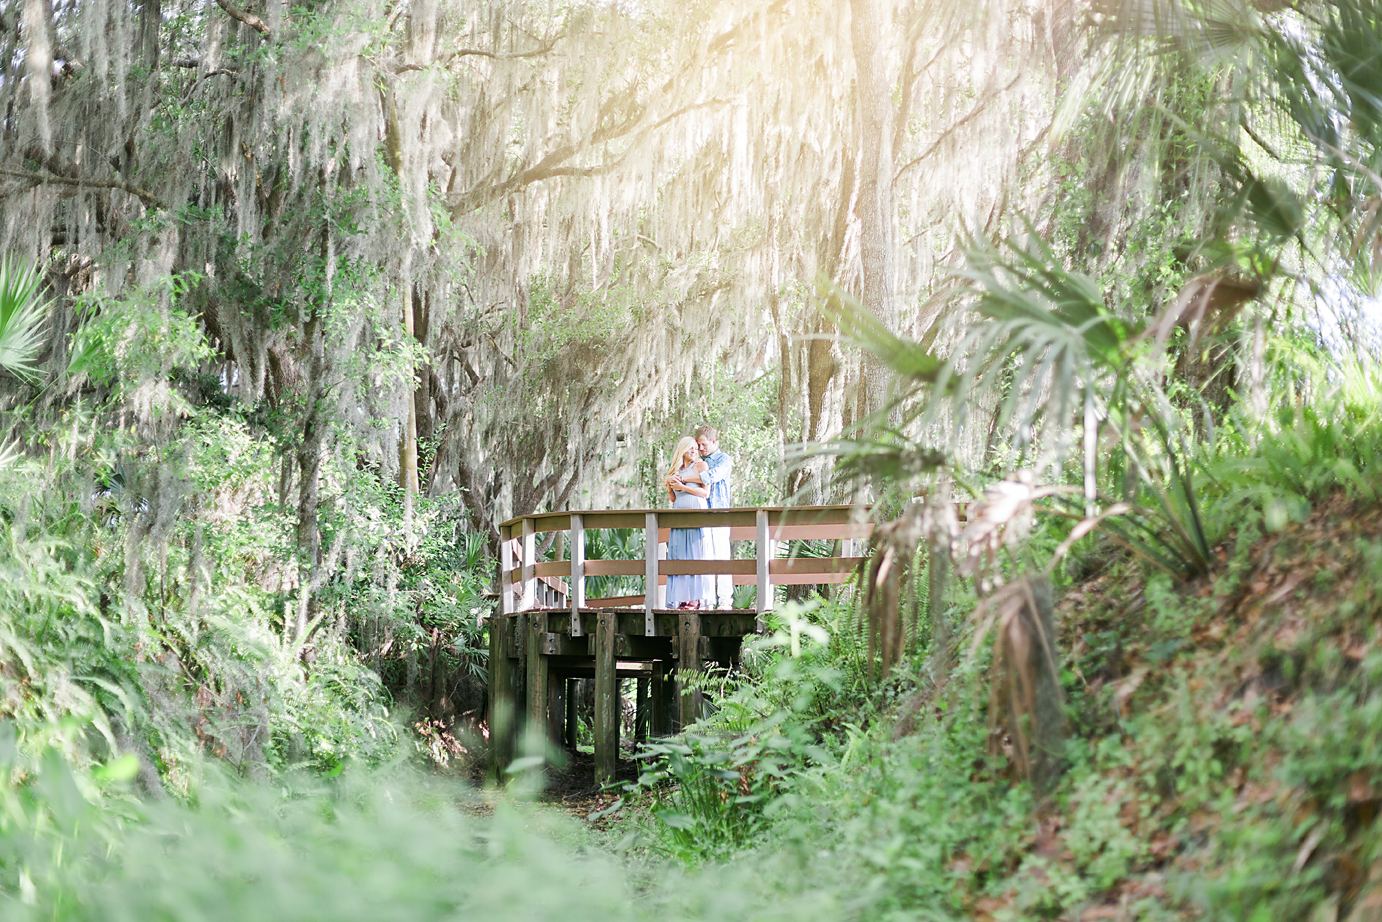 Samantha + Holden - Emily & Co. Photography - Destination Wedding Photography - Sarasota Engagement Photography - WEB (17).jpg